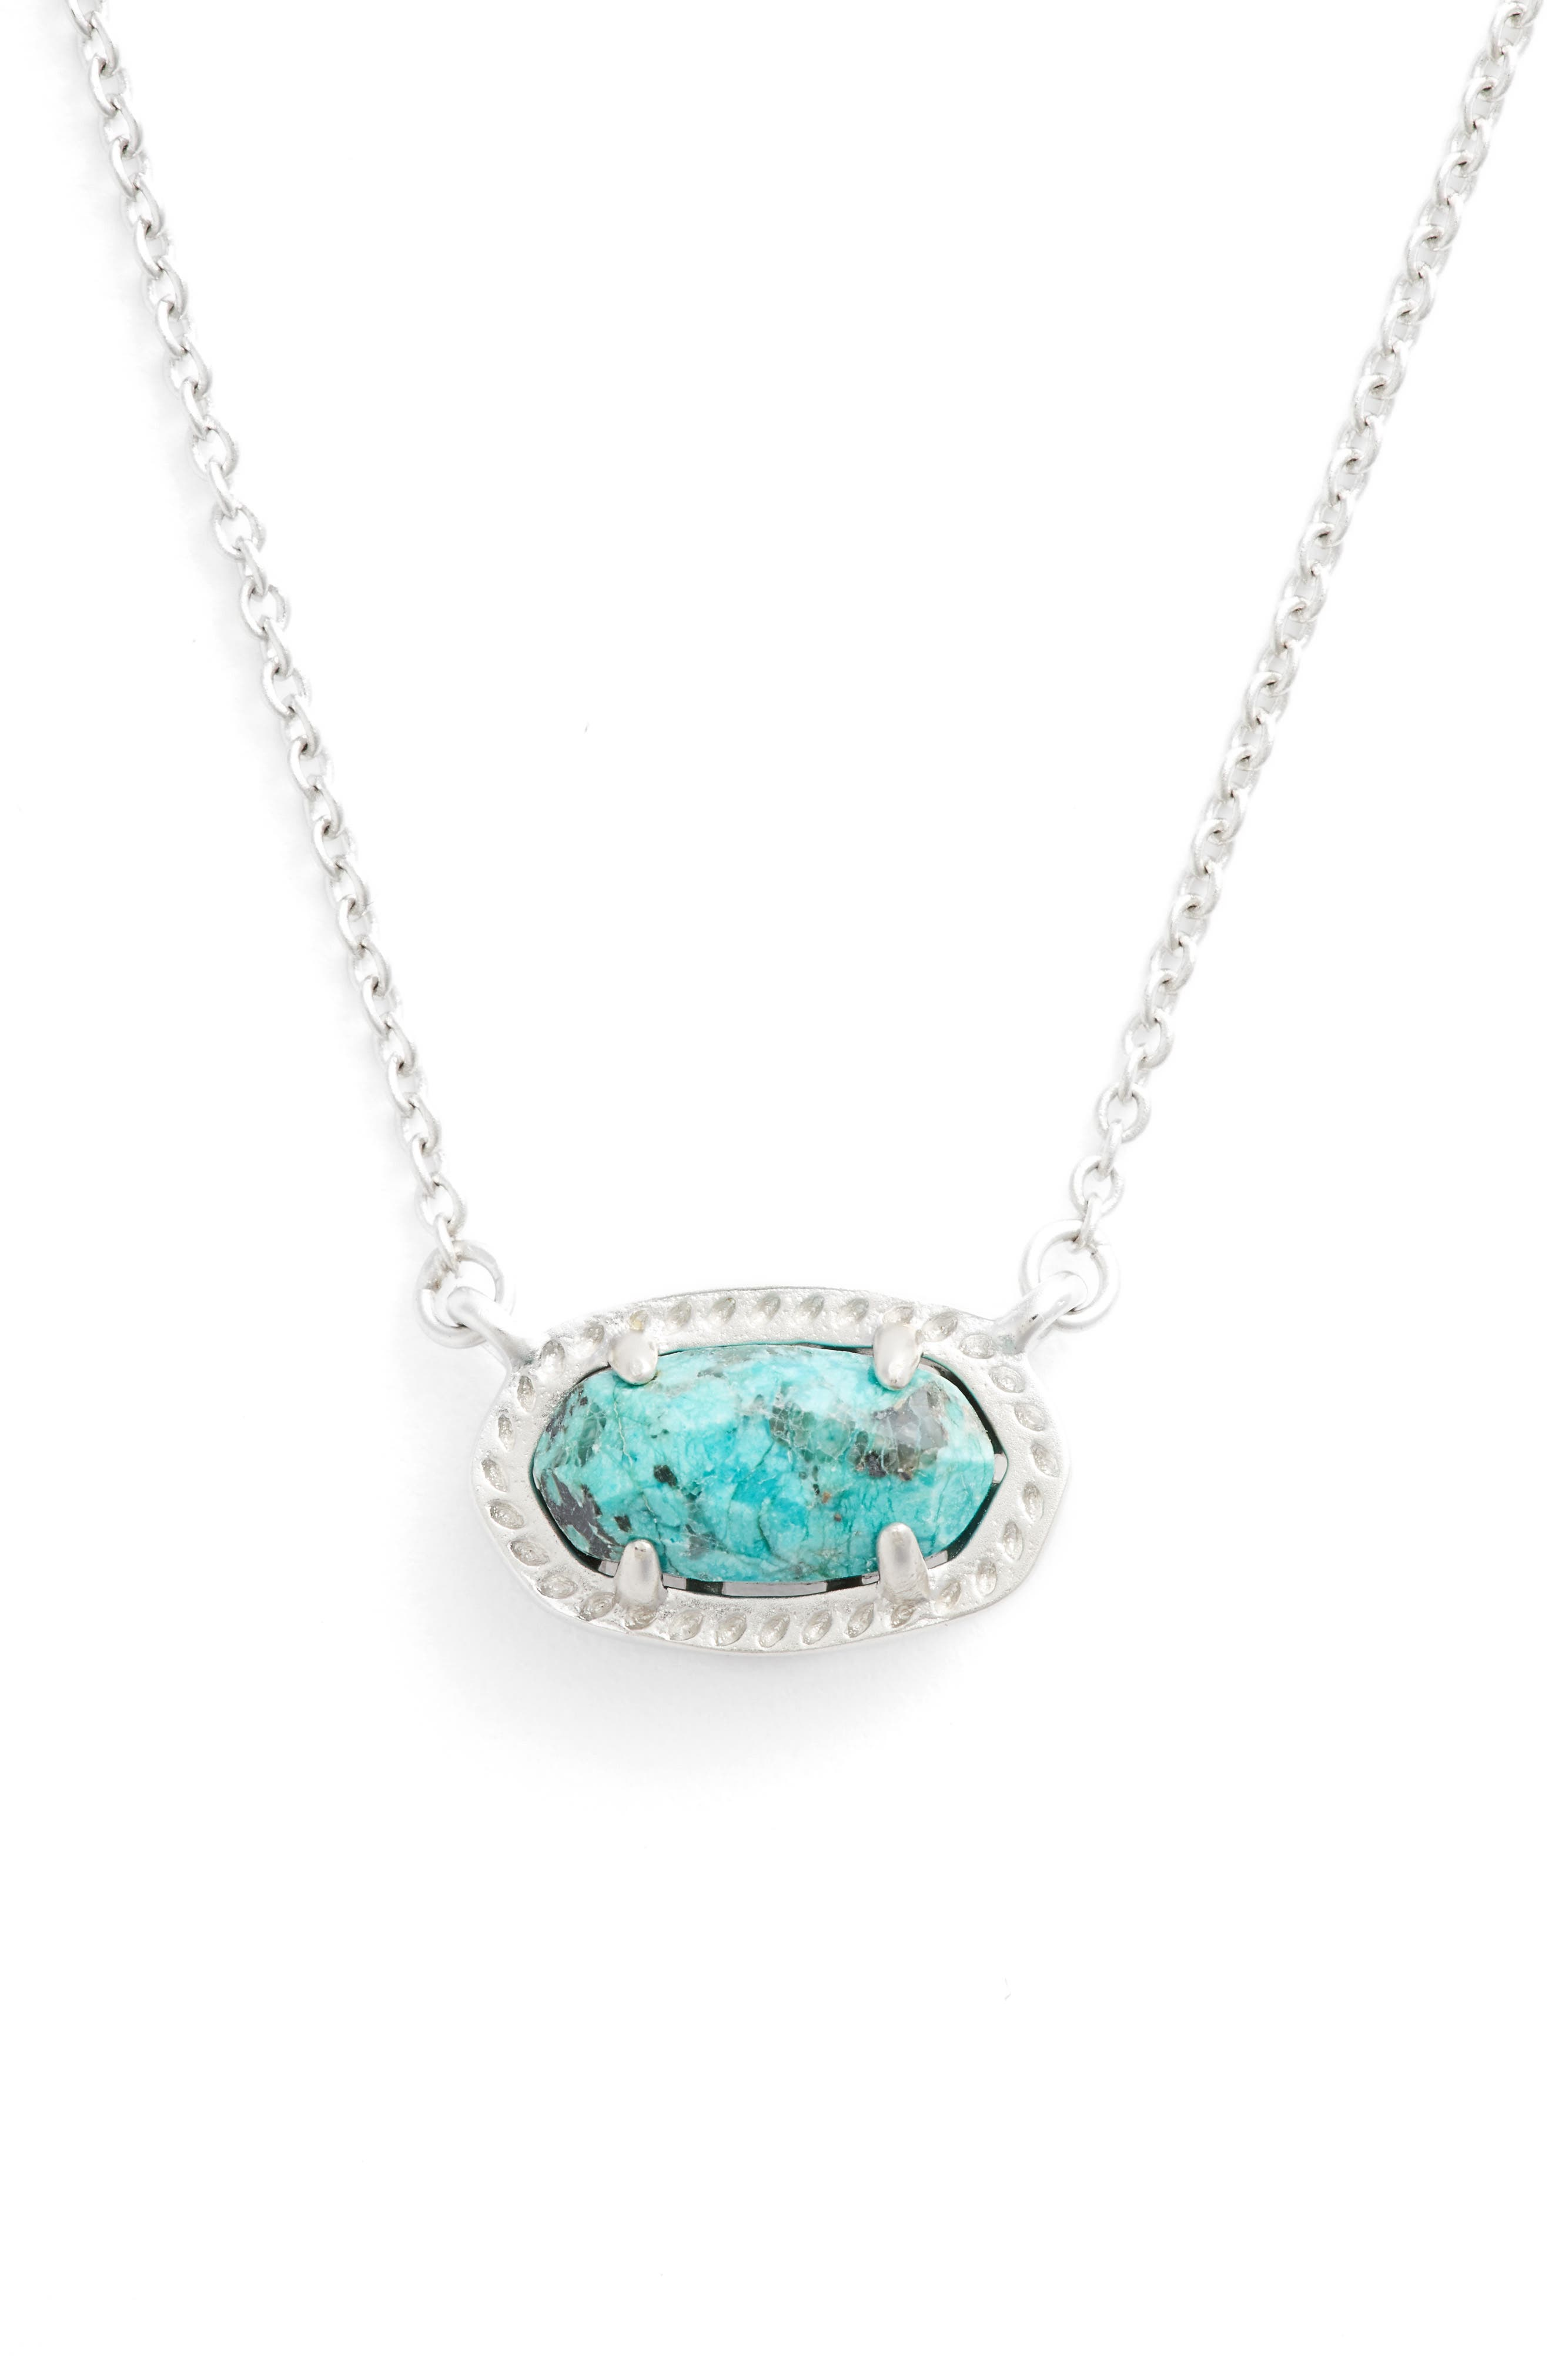 Ember Pendant Necklace,                             Main thumbnail 1, color,                             AFRICAN TURQUOISE/ SILVER